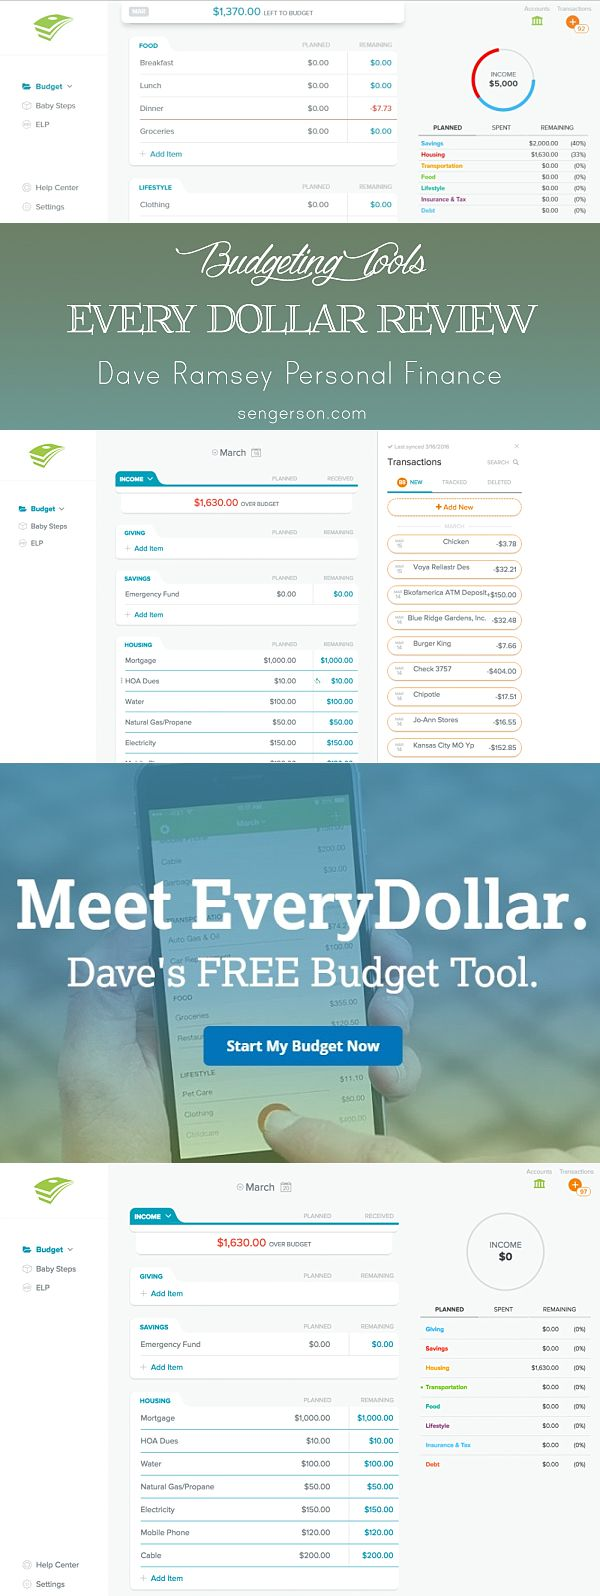 every dollar budgeting tool review great personal finance budgeting tool that is accessible online